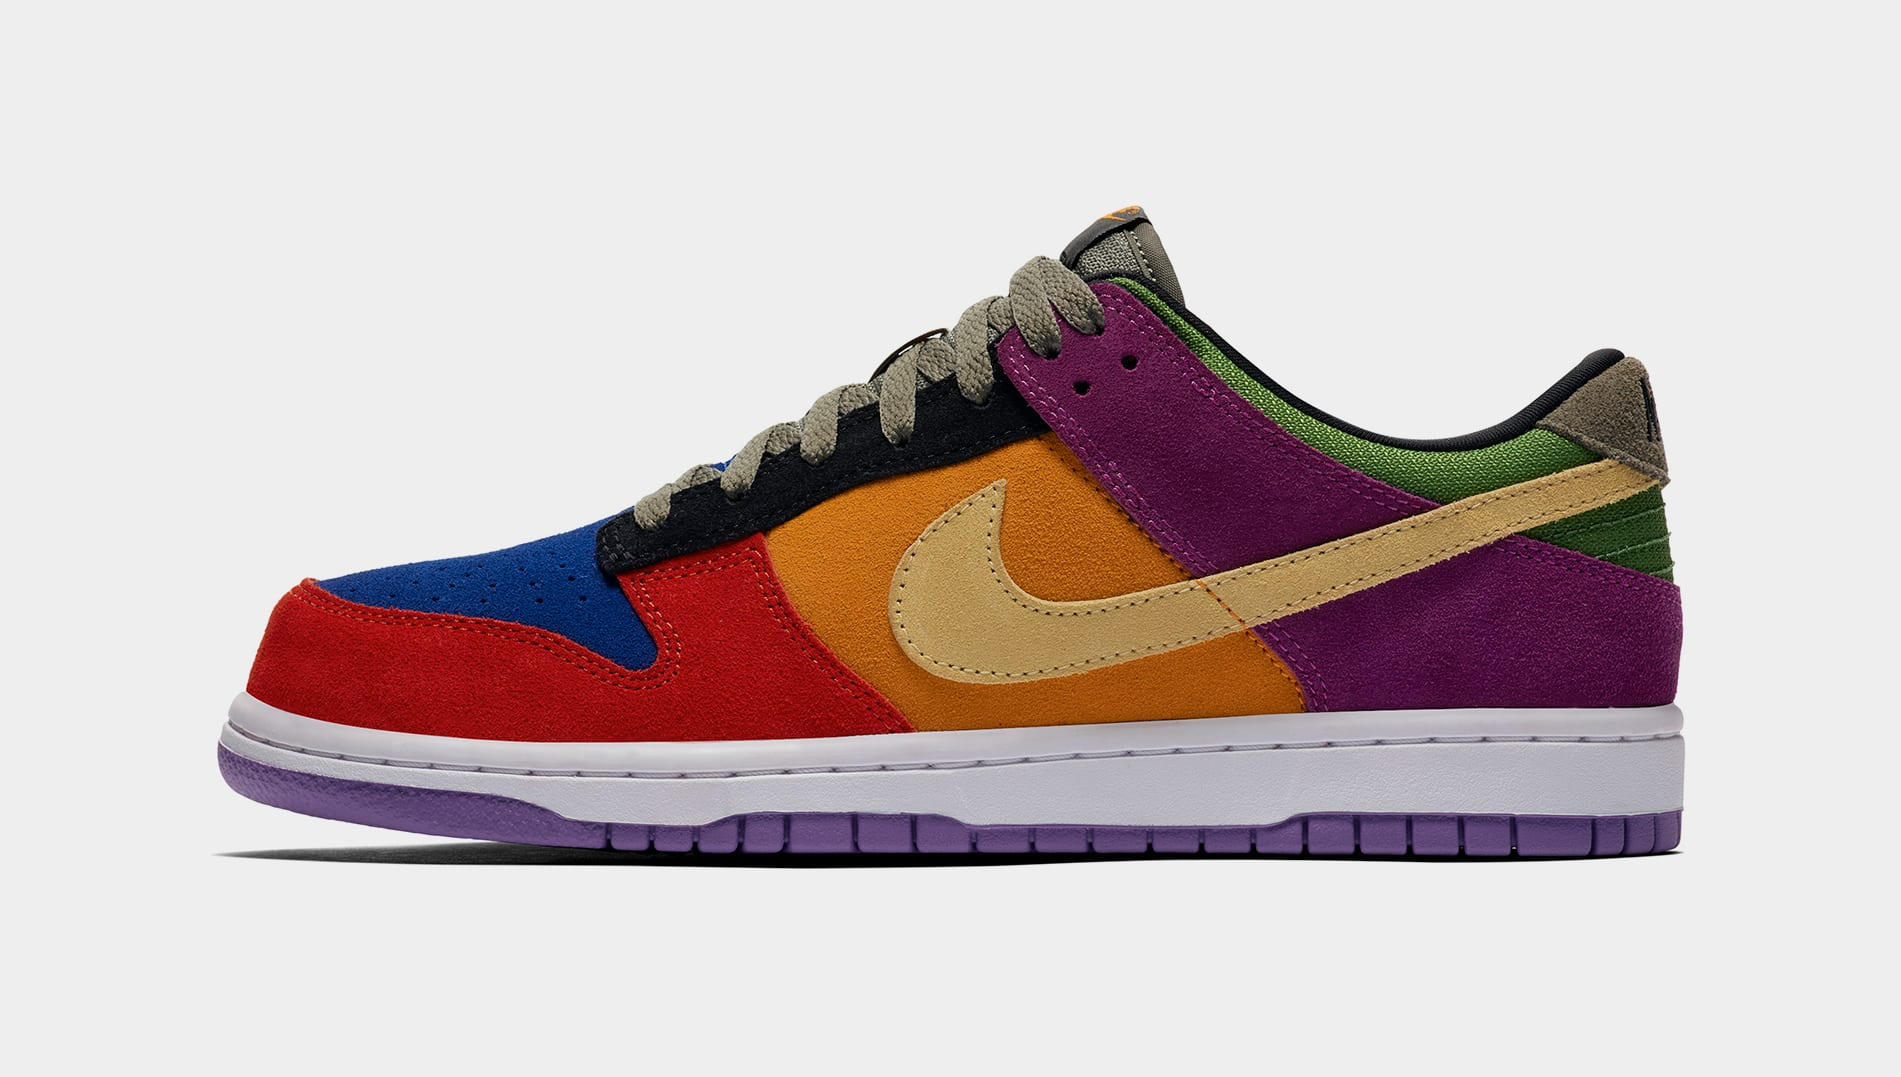 nike-dunk-low-viotech-2019-ct5050-500-lateral